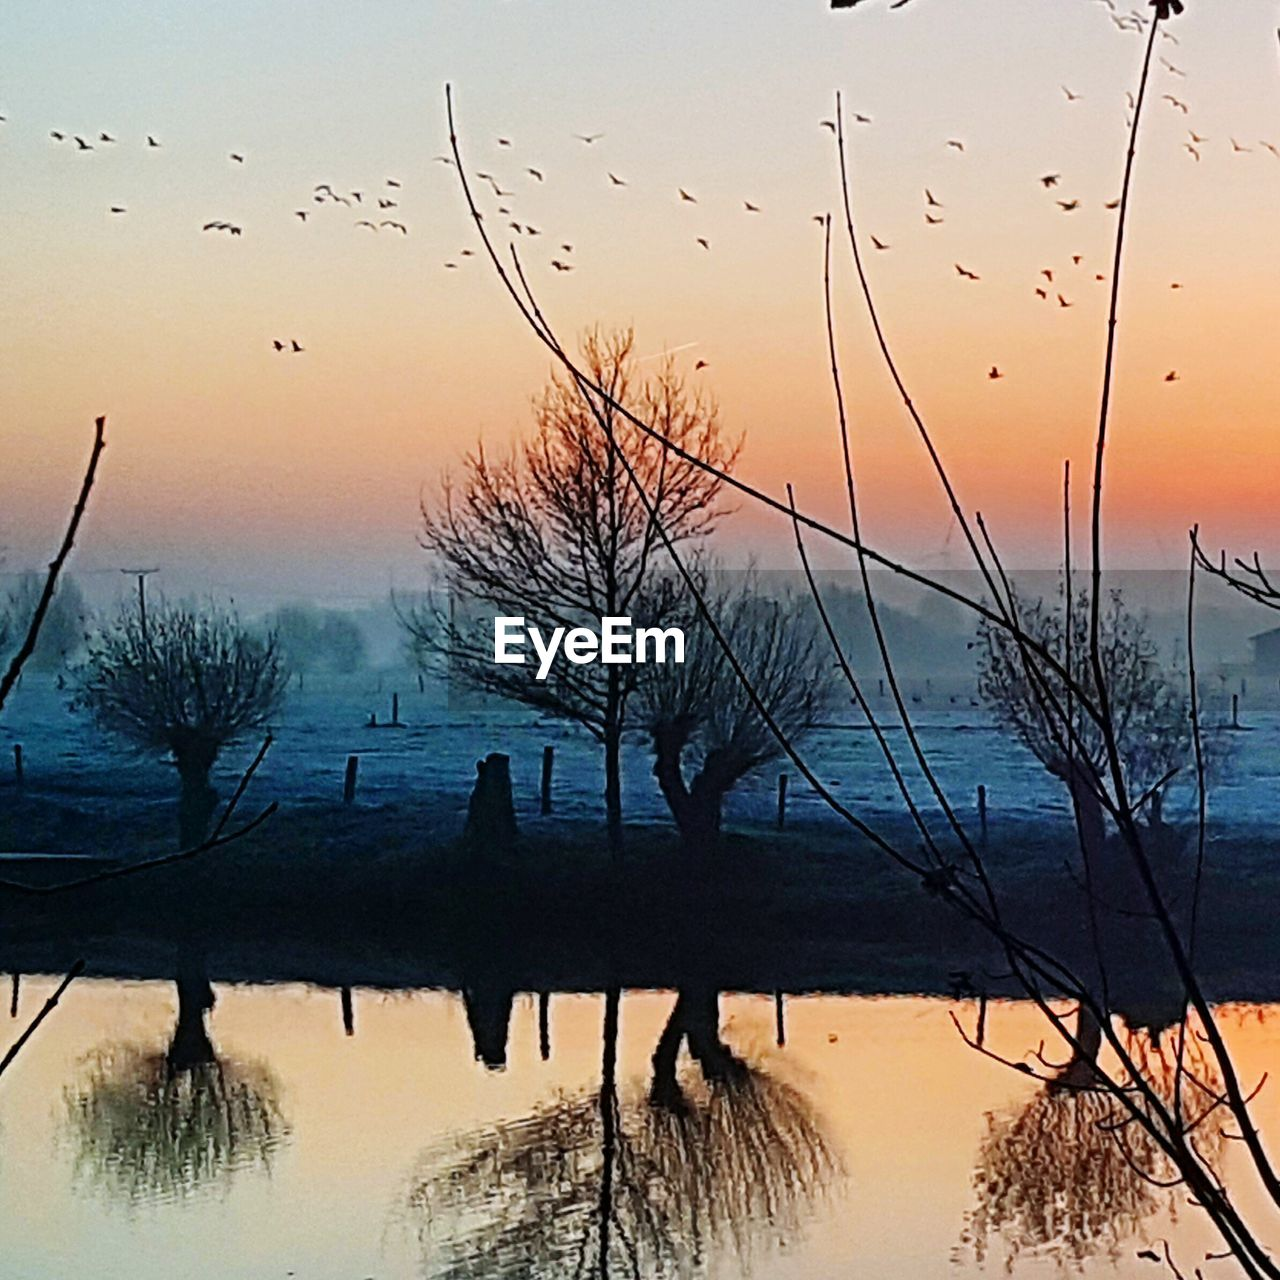 bird, sunset, nature, flying, silhouette, beauty in nature, flock of birds, water, large group of animals, tree, sky, animals in the wild, scenics, animal themes, tranquility, migrating, no people, outdoors, bare tree, day